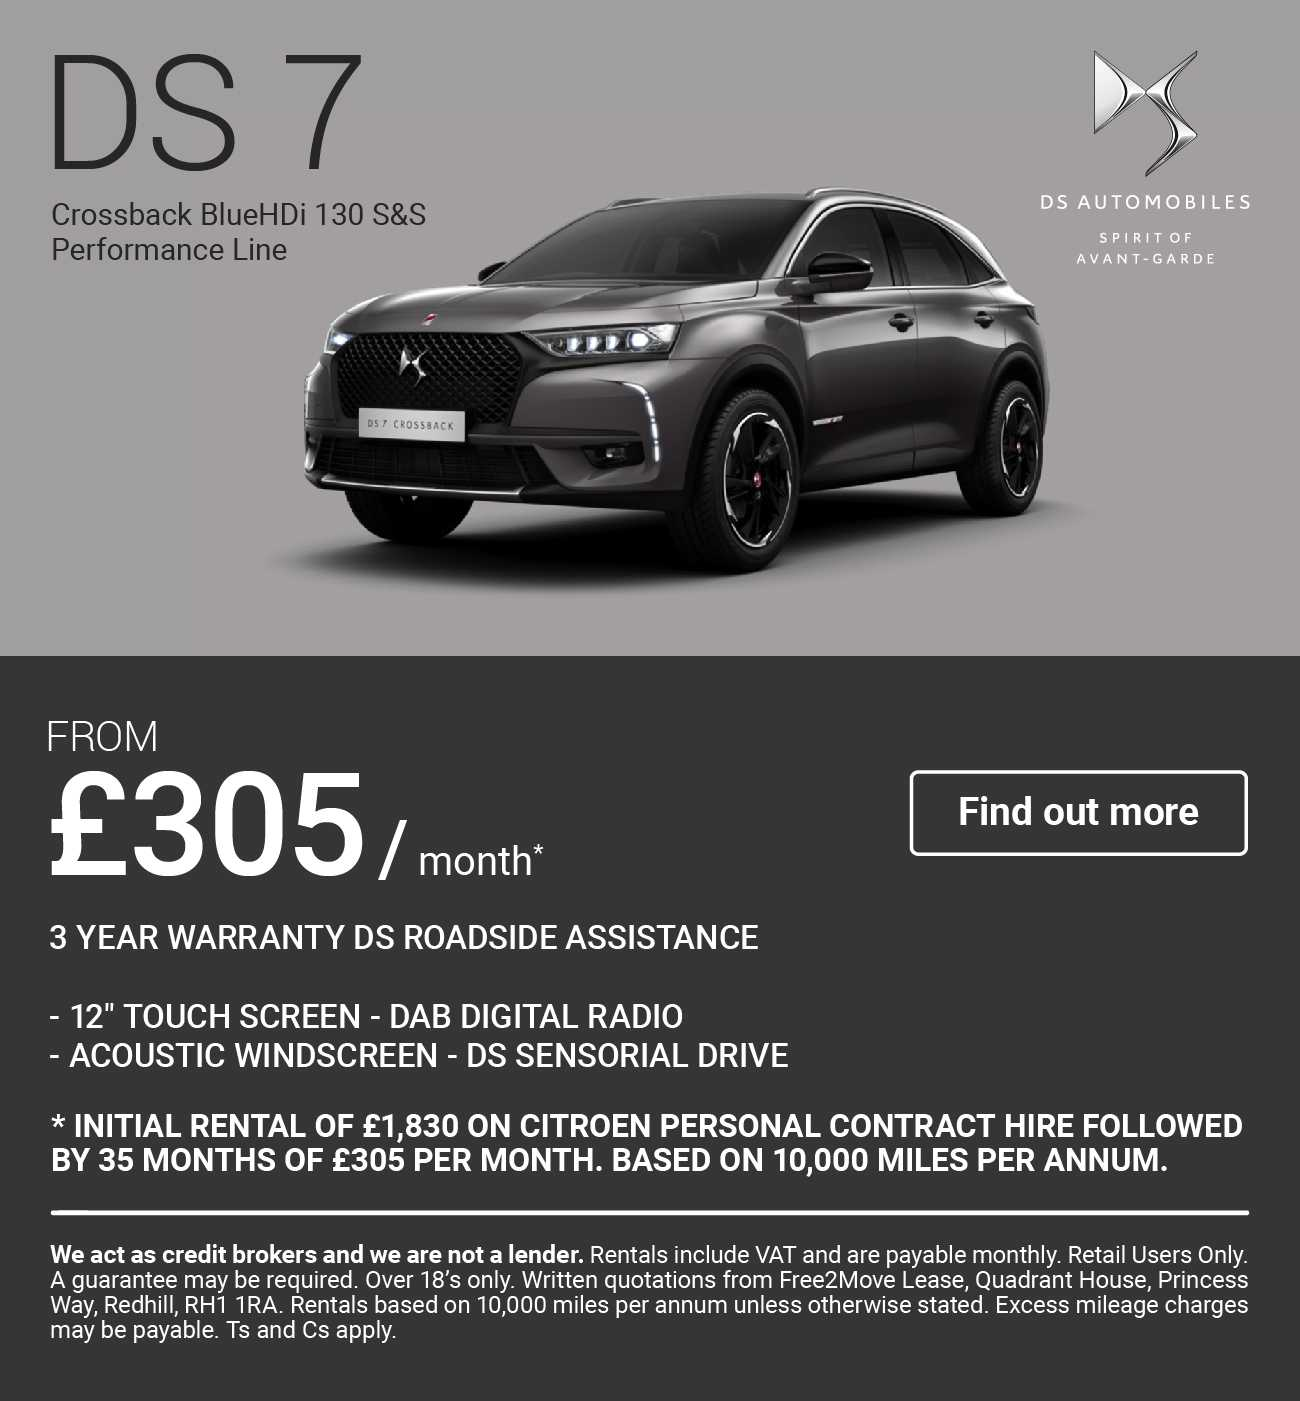 DS 7 Performance Line